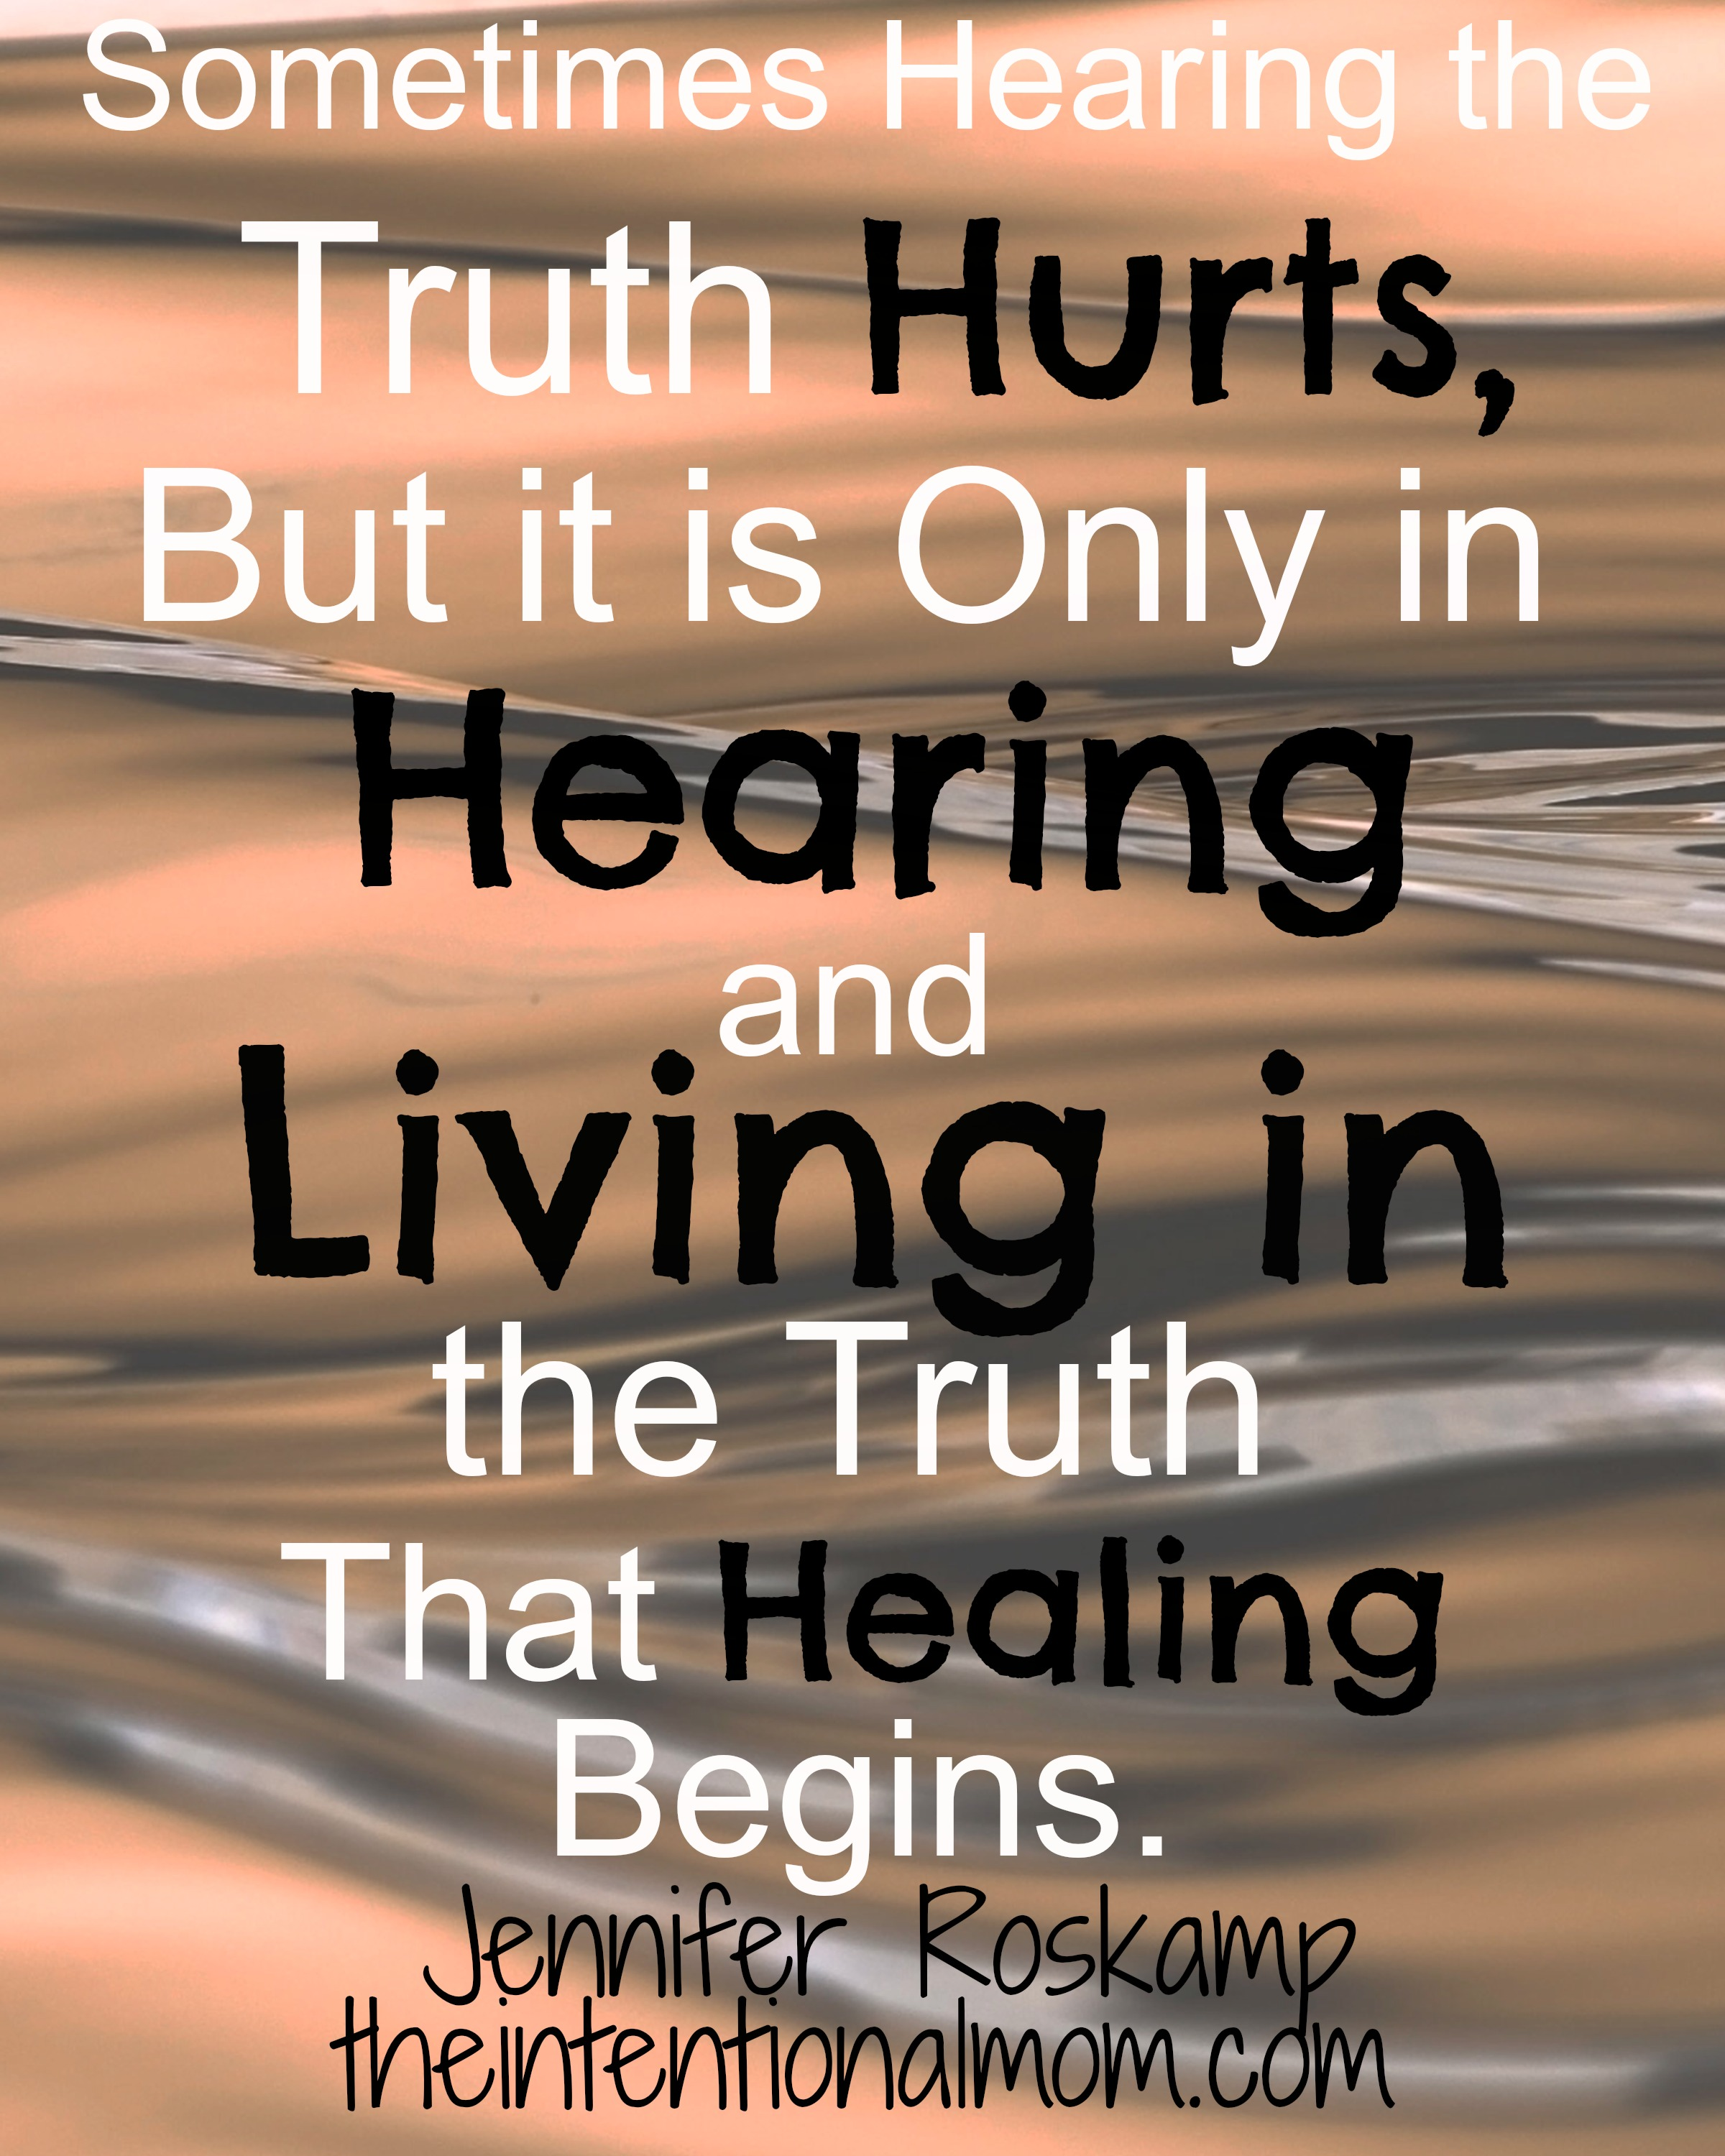 Inspirational Quote About Hearing the Truth - The ...